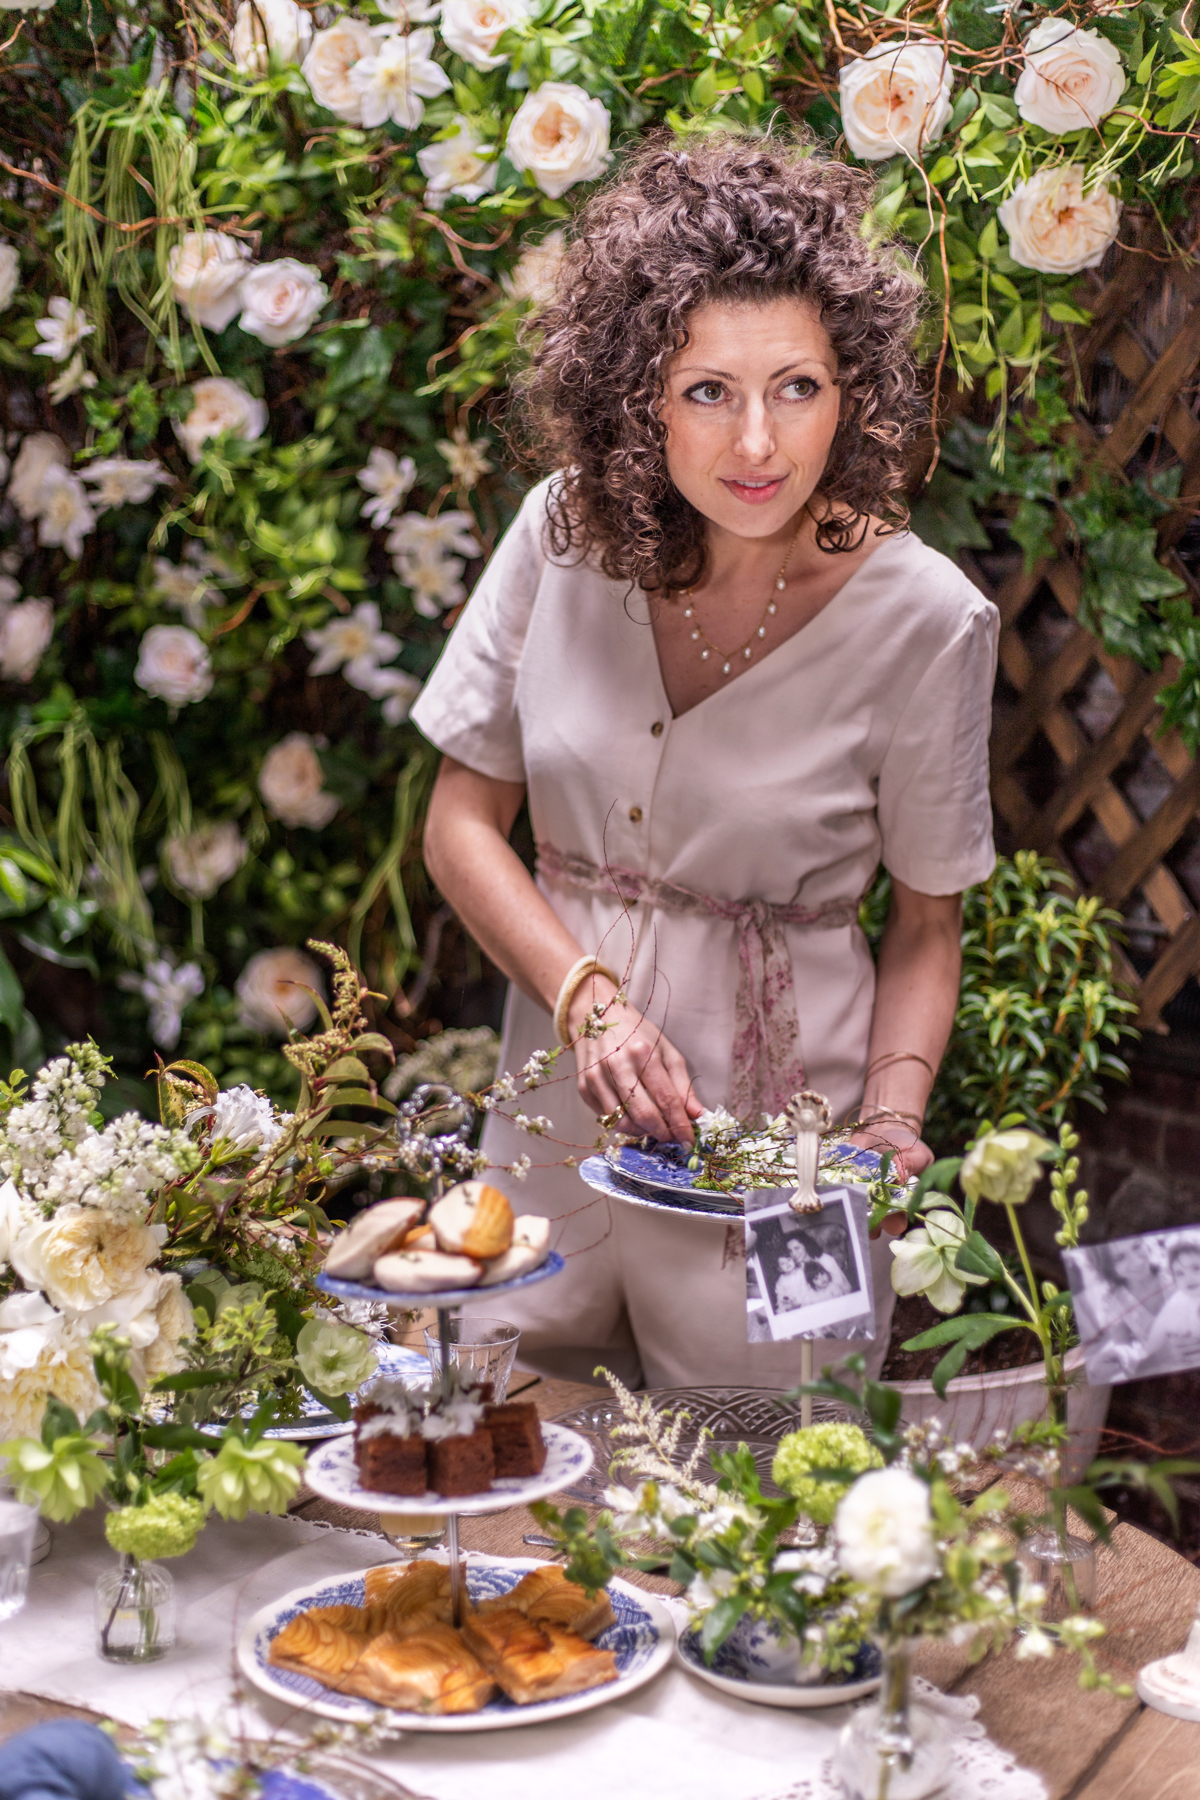 Maman Bakery Founder Elisa Marshall Shares Her Picture-Perfect Mother's Day Brunch